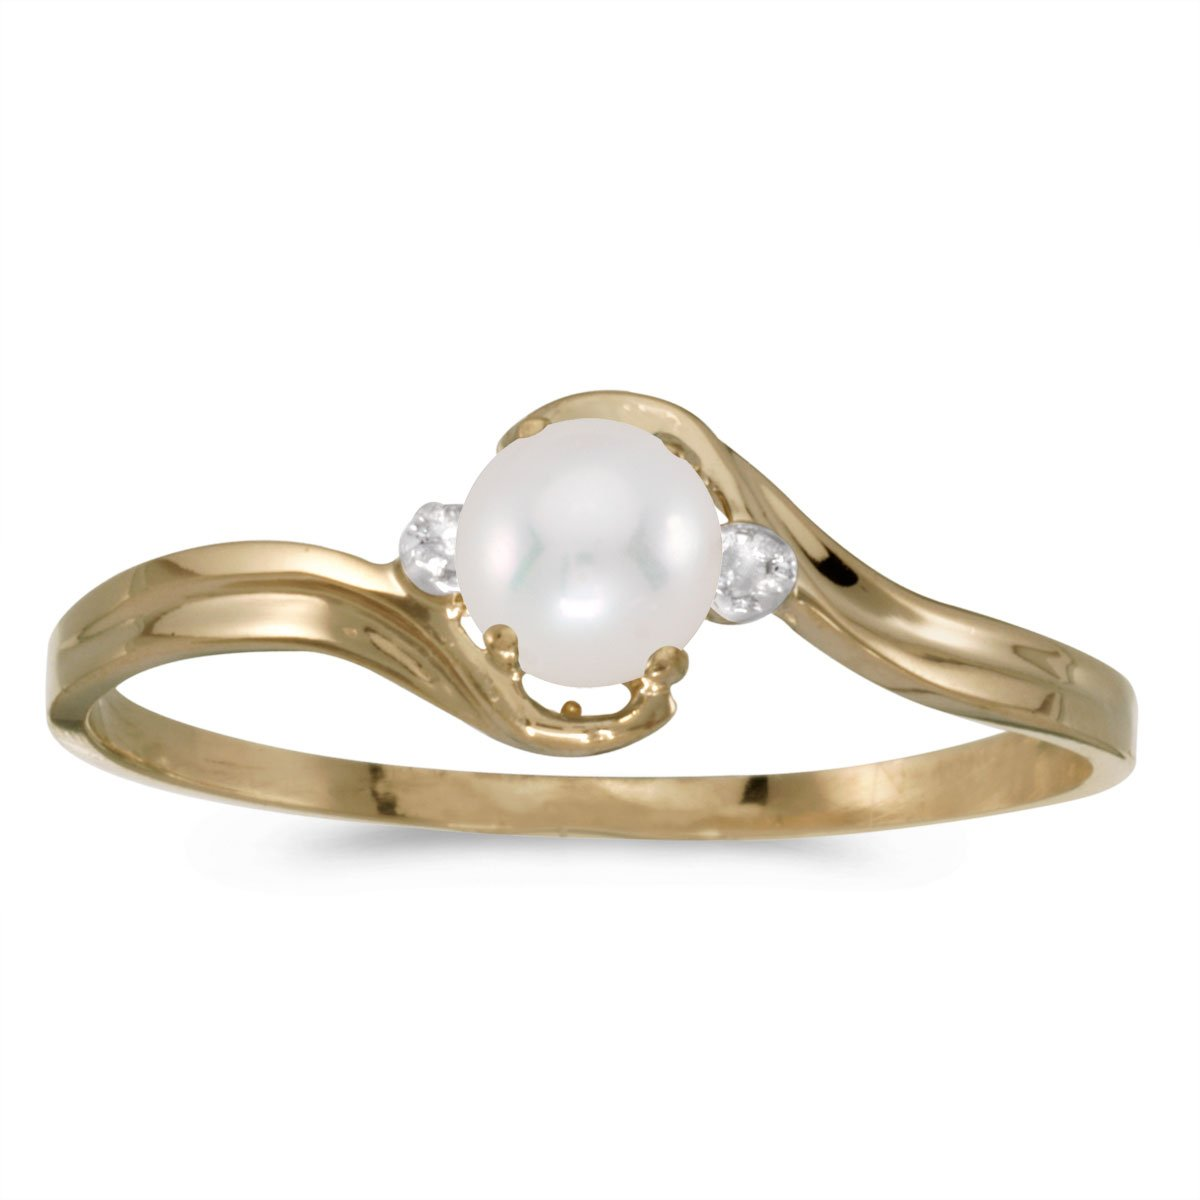 0.01 Carat (ctw) 10k Yellow Gold Round Freshwater-Cultured Pearl and Diamond Accent Bypass Swirl Fashion Promise Ring (4 MM) - Size 8